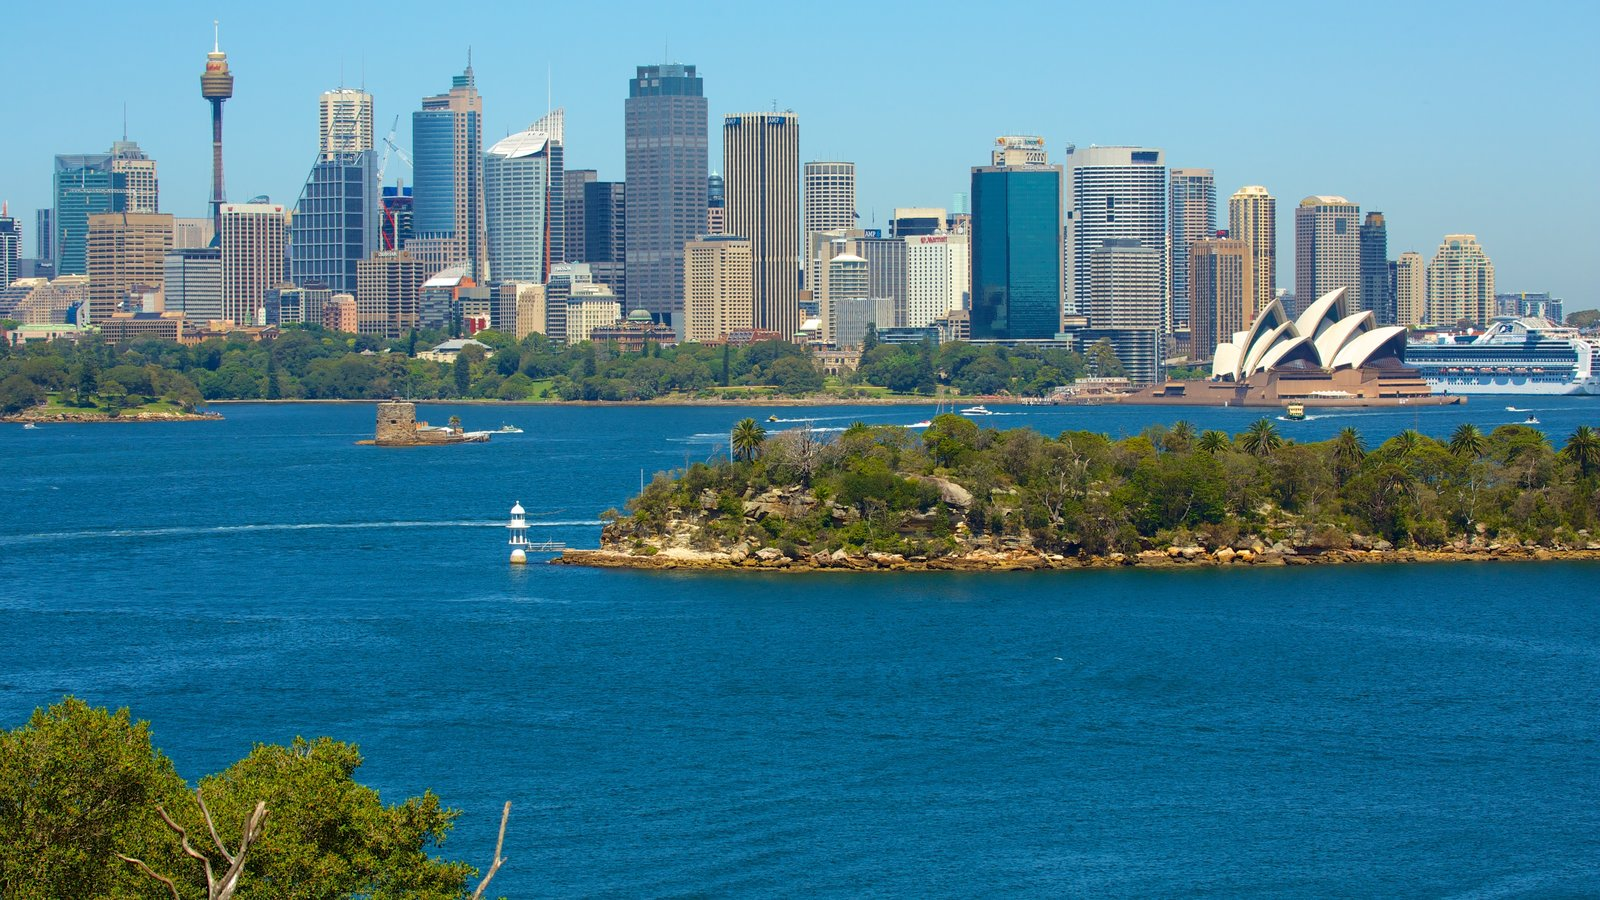 Sydney featuring skyline, a bay or harbor and general coastal views